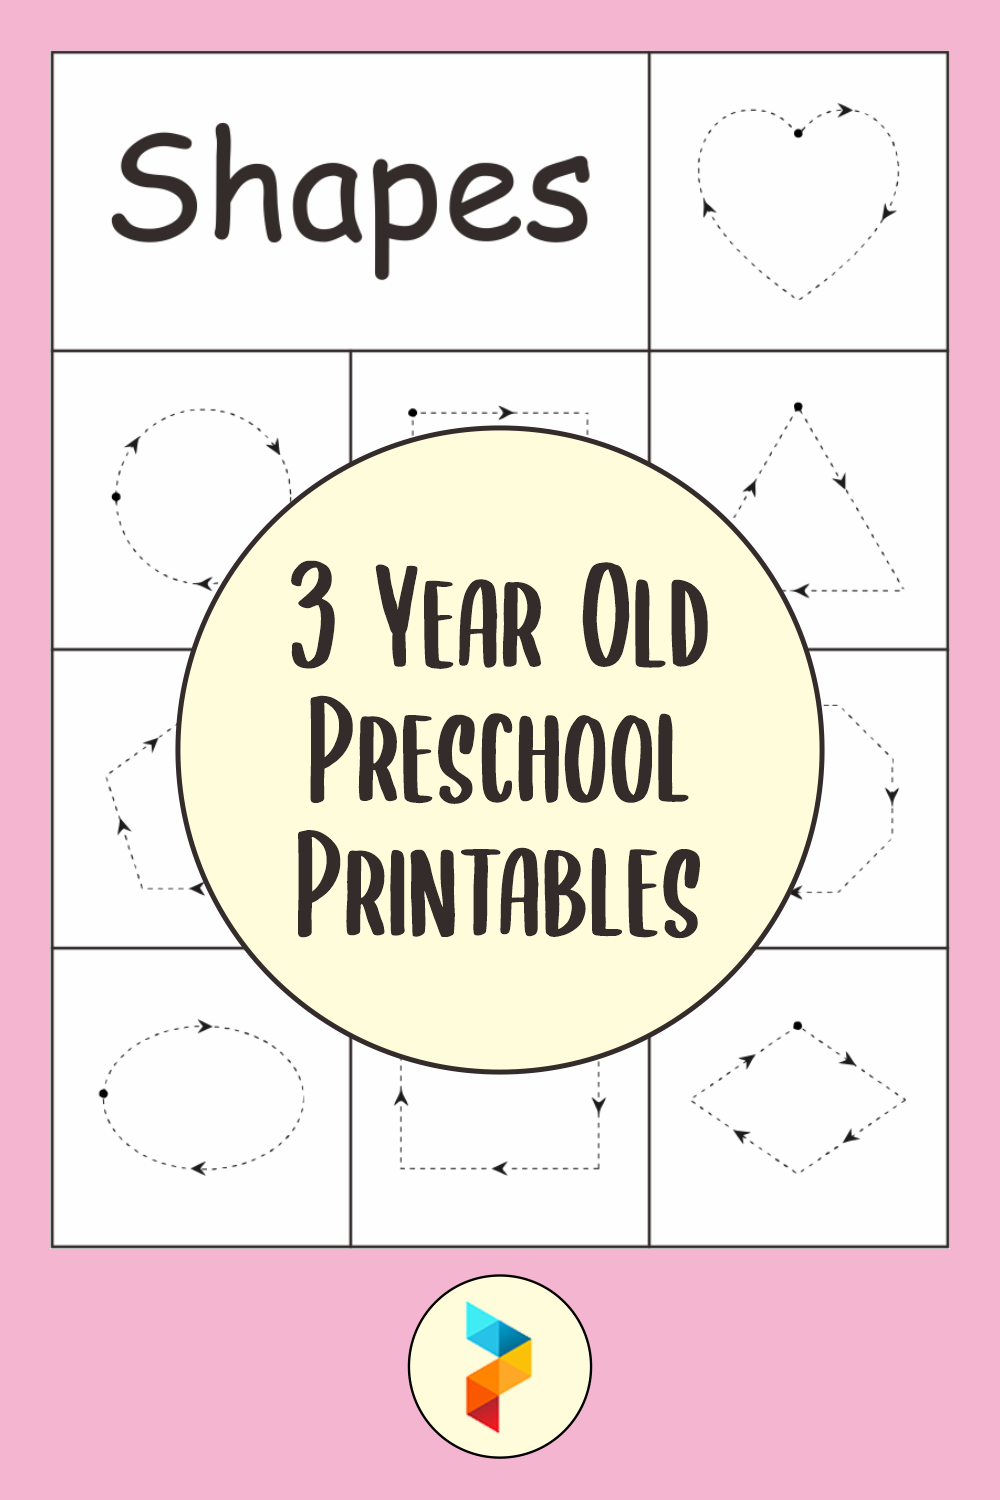 3 Year Old Preschool Printables